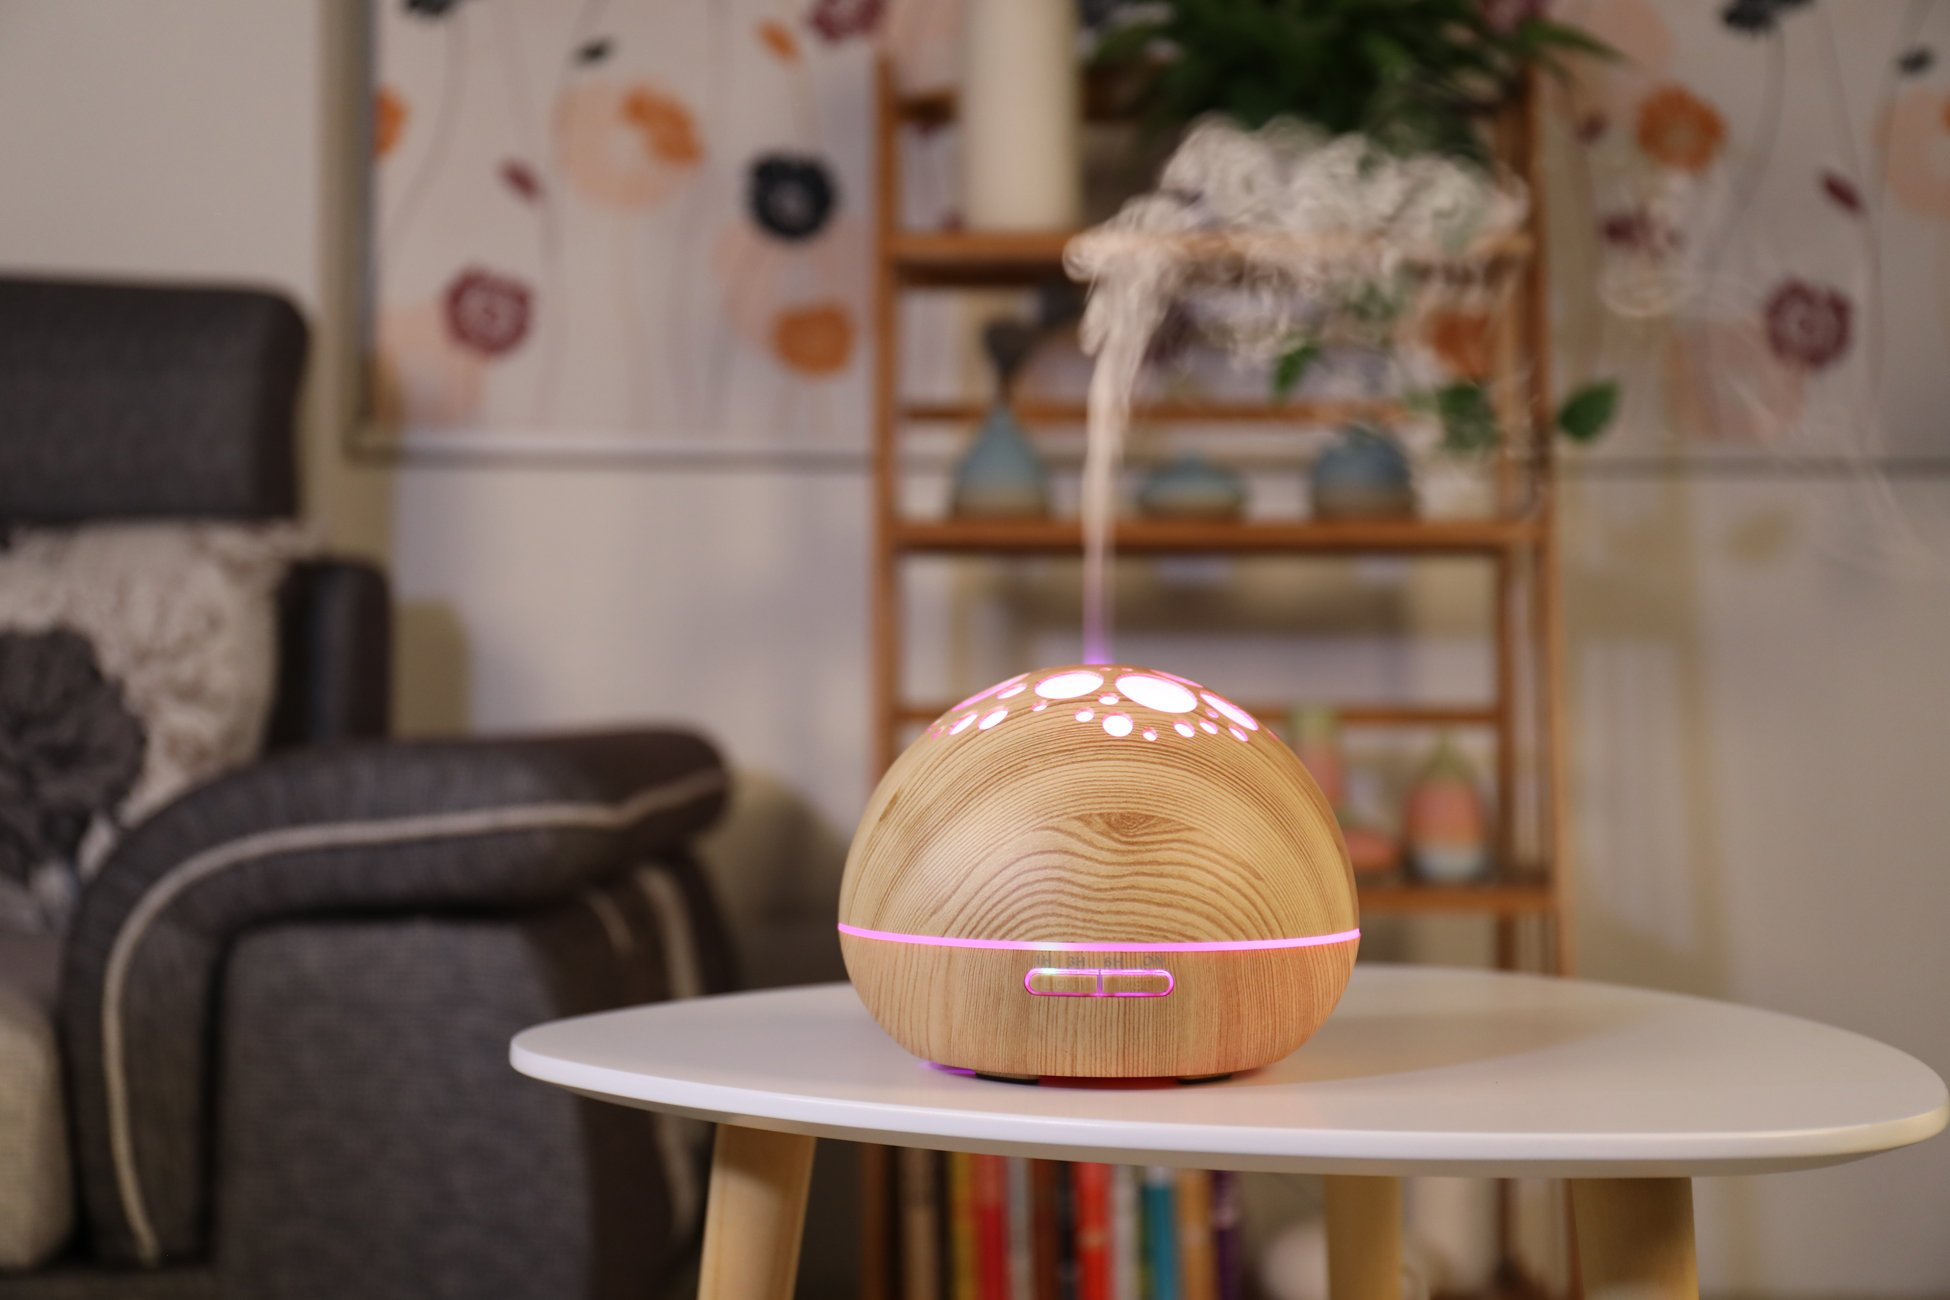 Aroma Essential Oil Diffuser Ultrasonic Cool Mist Humidifier with Adjustable Mist Mode 7 Color LED Lights and Waterless Auto Power-off for Office Home Study Yoga Spa 300ml (Light Wood) by RSL (Image #4)